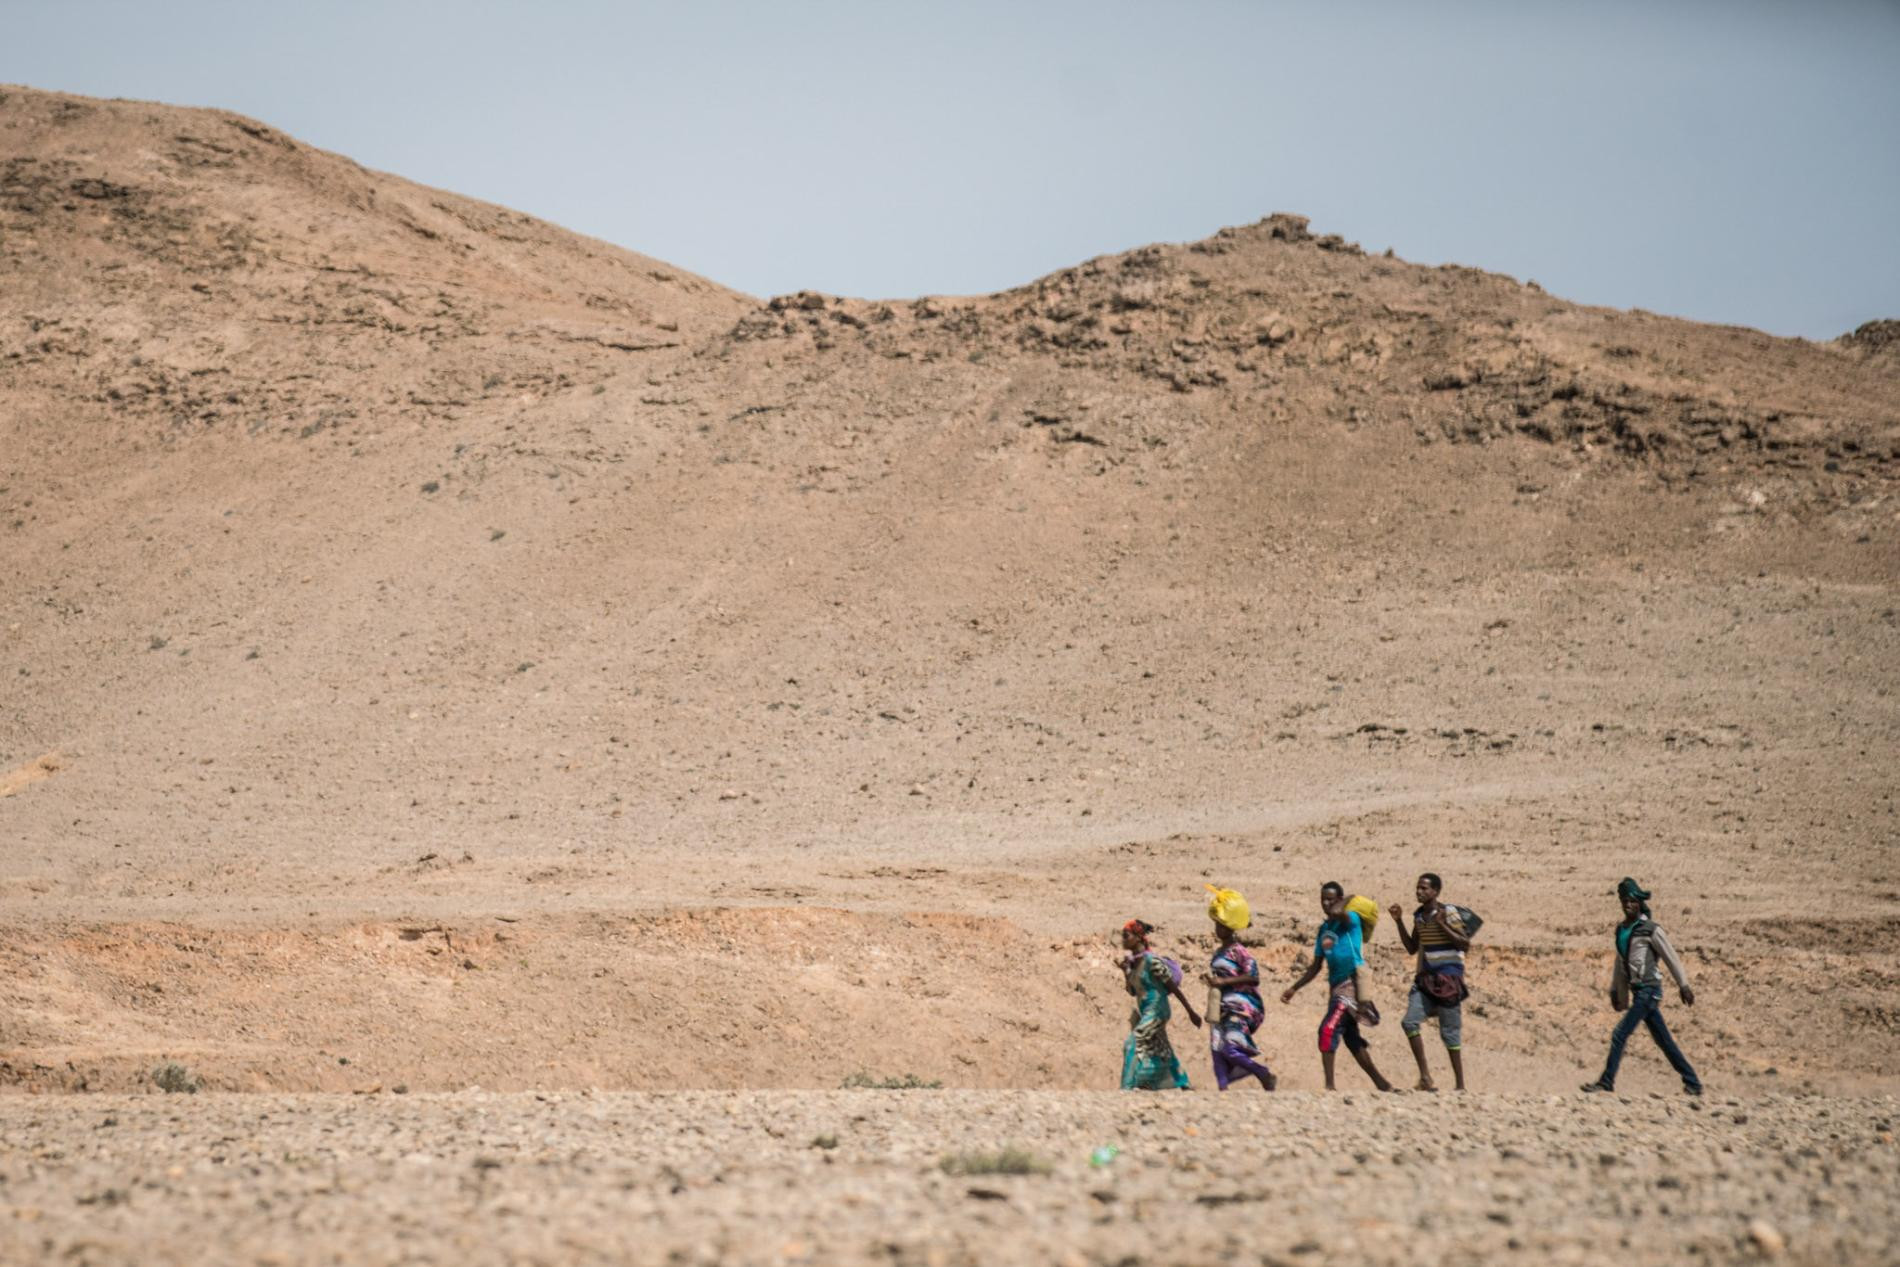 In 2016, Somali and Ethiopian migrants walk to caves outside Mareero, a smuggling hub in the autonomous region of Puntland, to await boats that will take them across the Gulf of Aden to Yemen and from there to Saudi Arabia and Gulf states—if they survive. For some stranded in IDP or refugee camps, this perilous journey is preferable to a life in limbo.